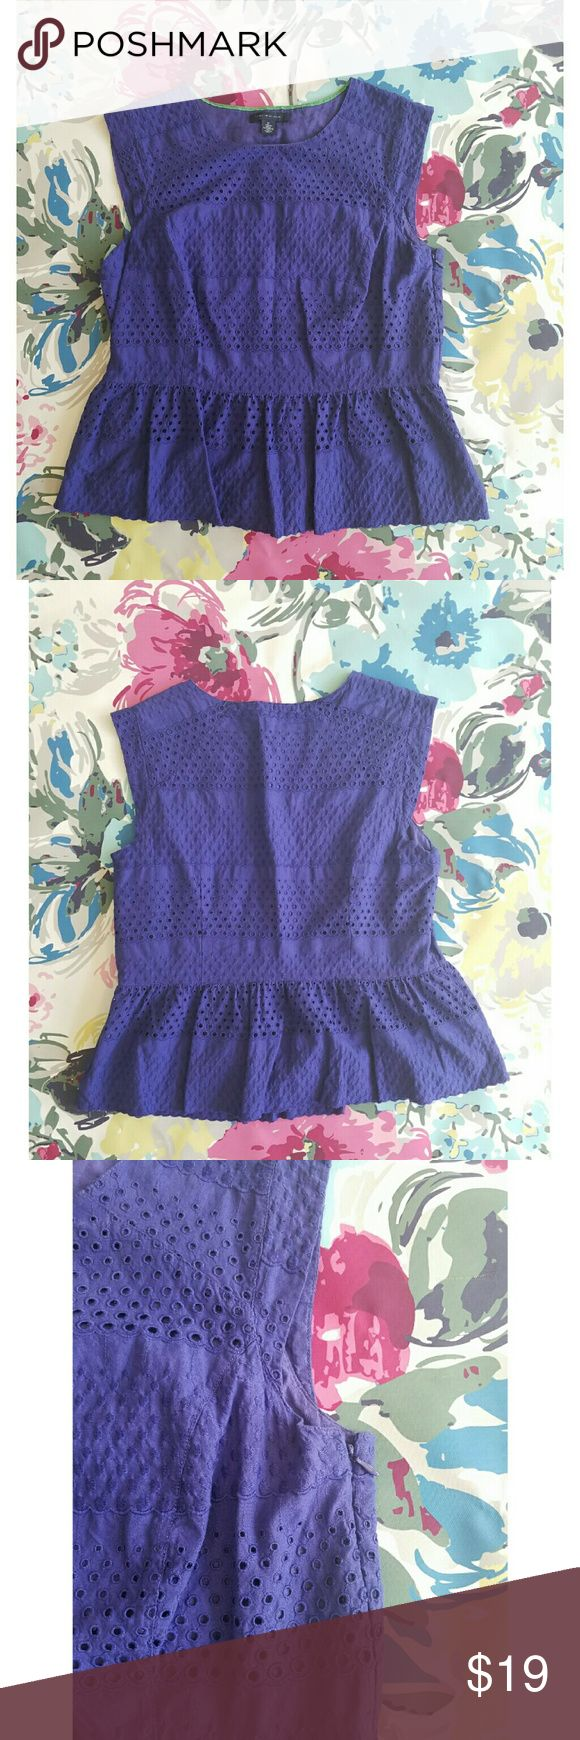 Tommy Hilfiger plum peplum eyelet top Light worn Linned  Zipper on size Cotton Armpit to armpit measures 19.5 inches 22 inches long 17.5 inch waist Tommy Hilfiger Tops